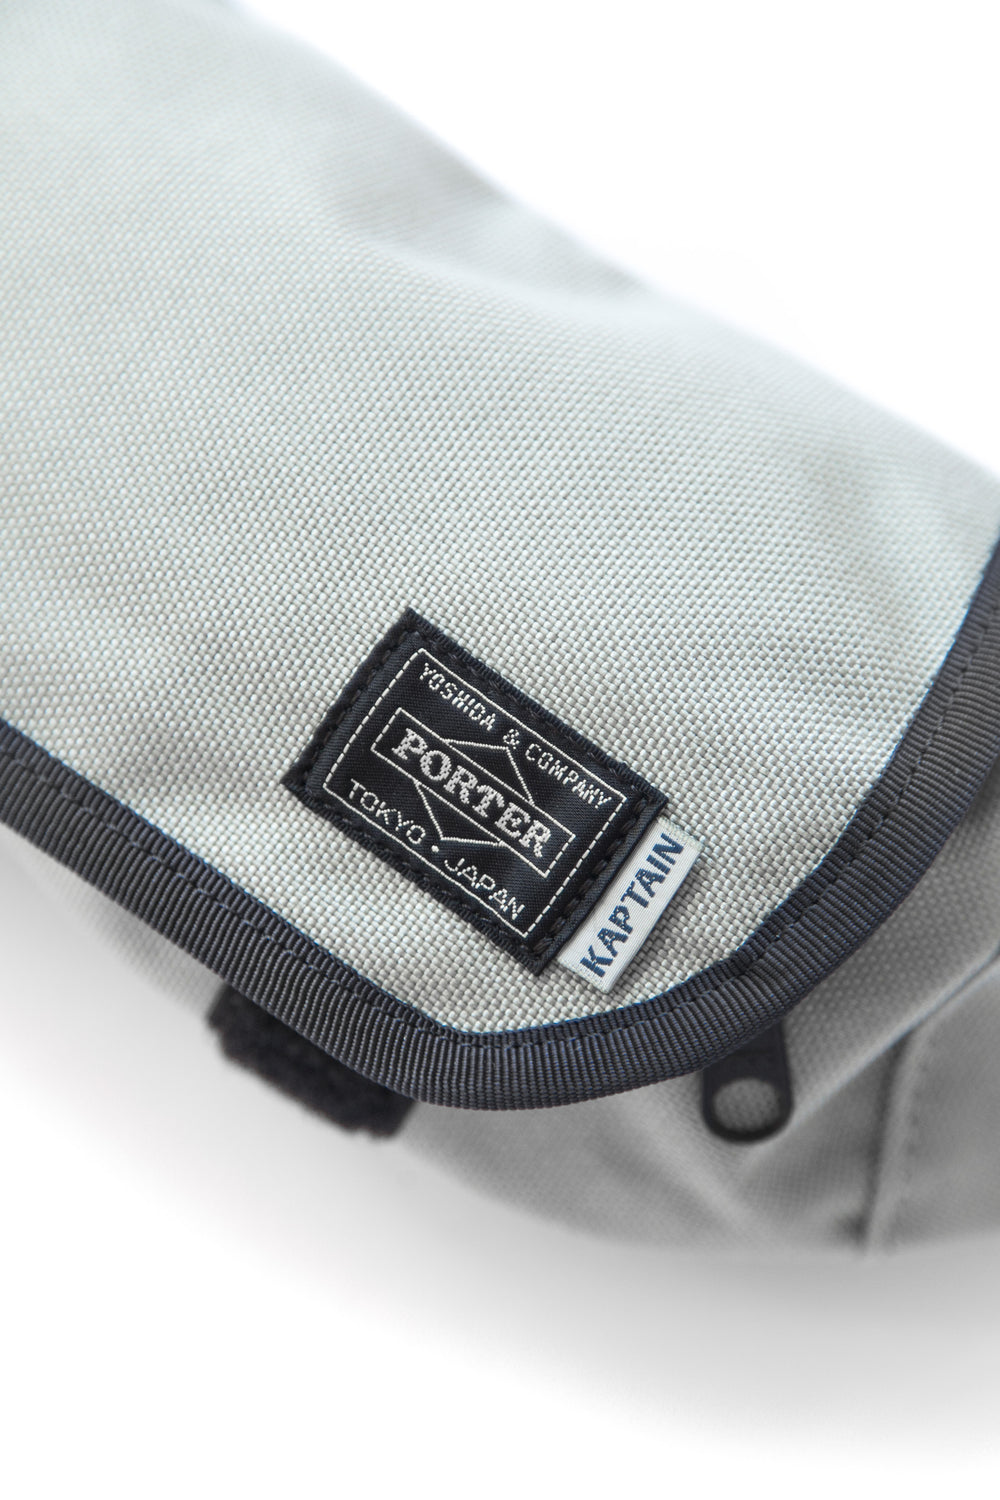 X PORTER TRAVELLER FUNNY BAG GREY